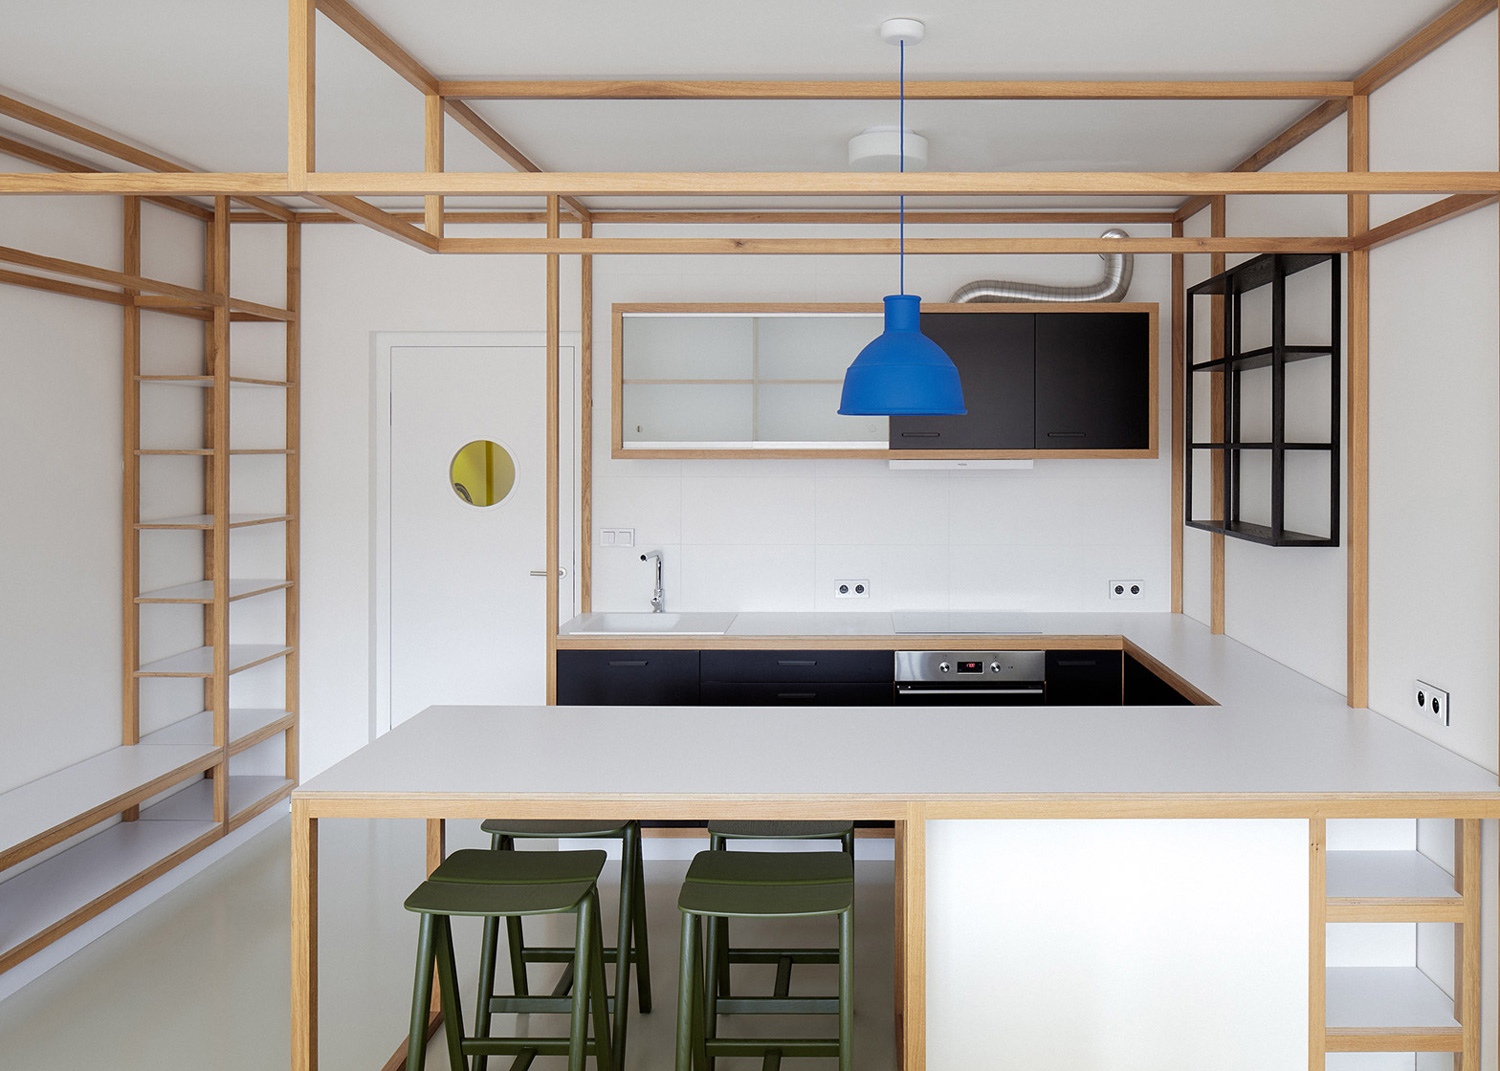 Guest Apartment Dddaann Mjolk Design interior Prague | Yellowtrace